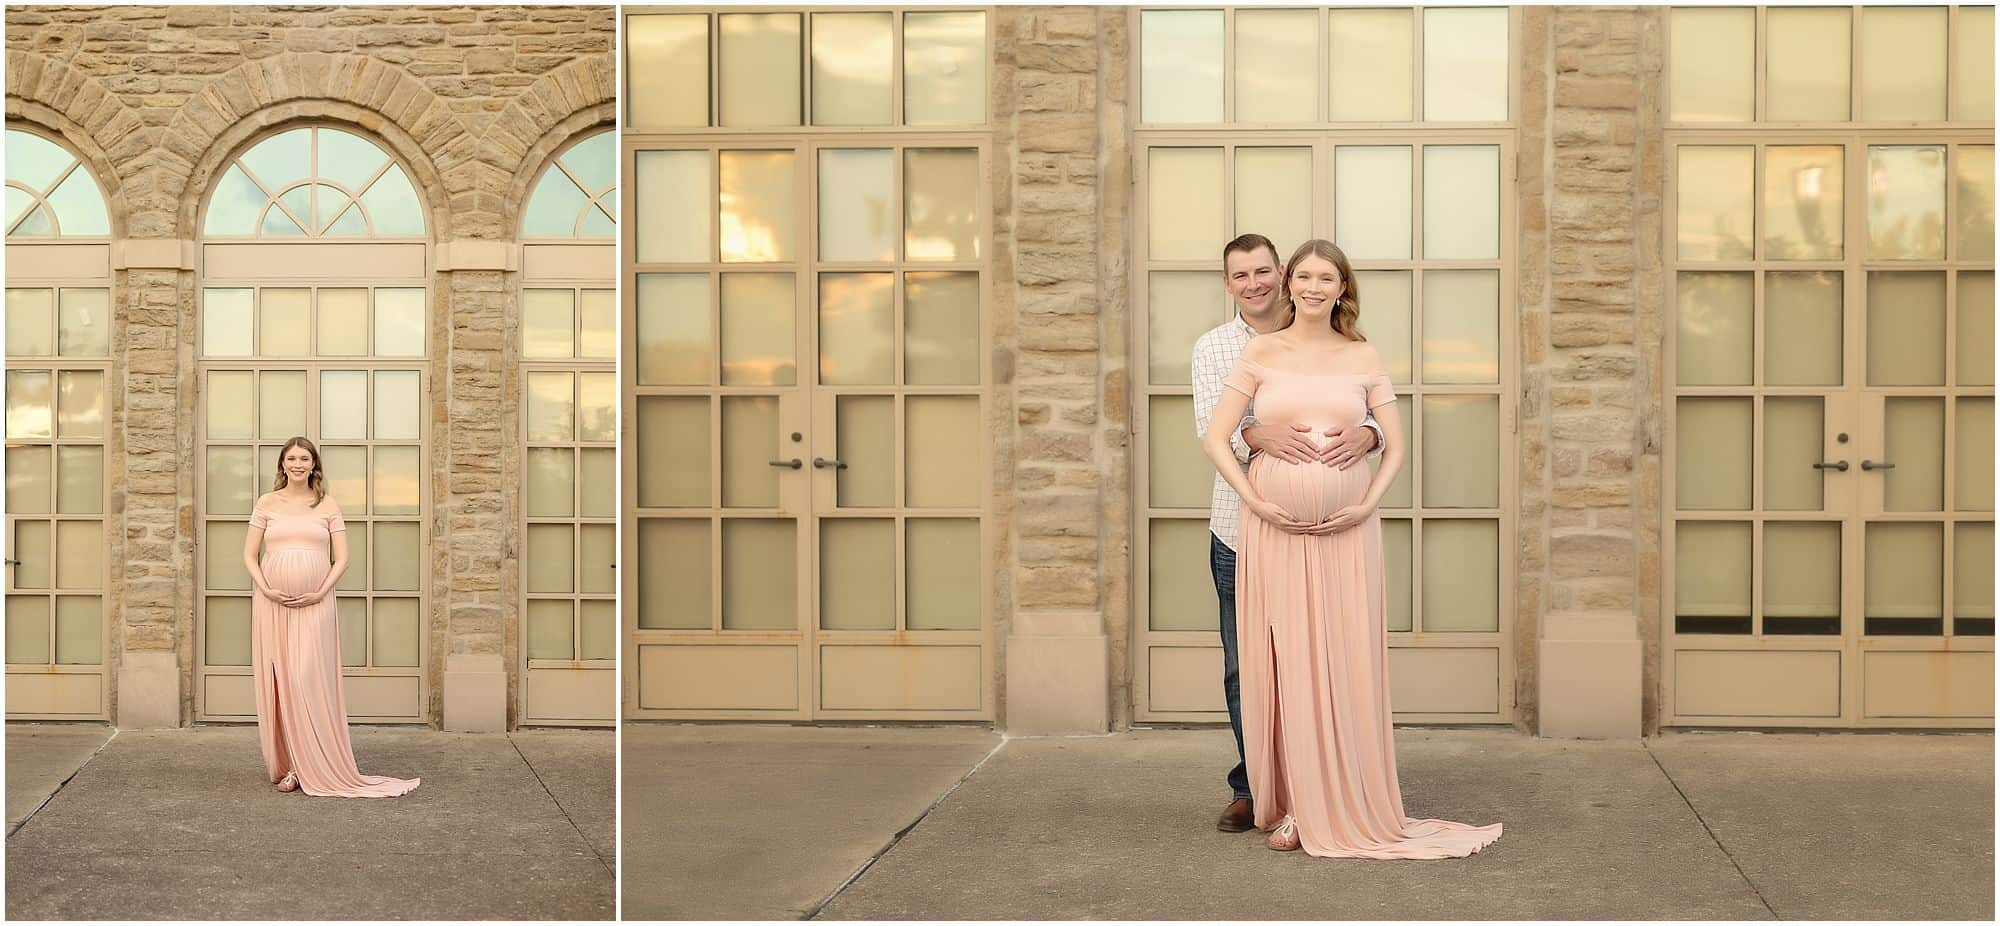 best maternity photographer in Cincinnati Ohio, Samantha Sinchek session with Amber at the beautiful Ault Park